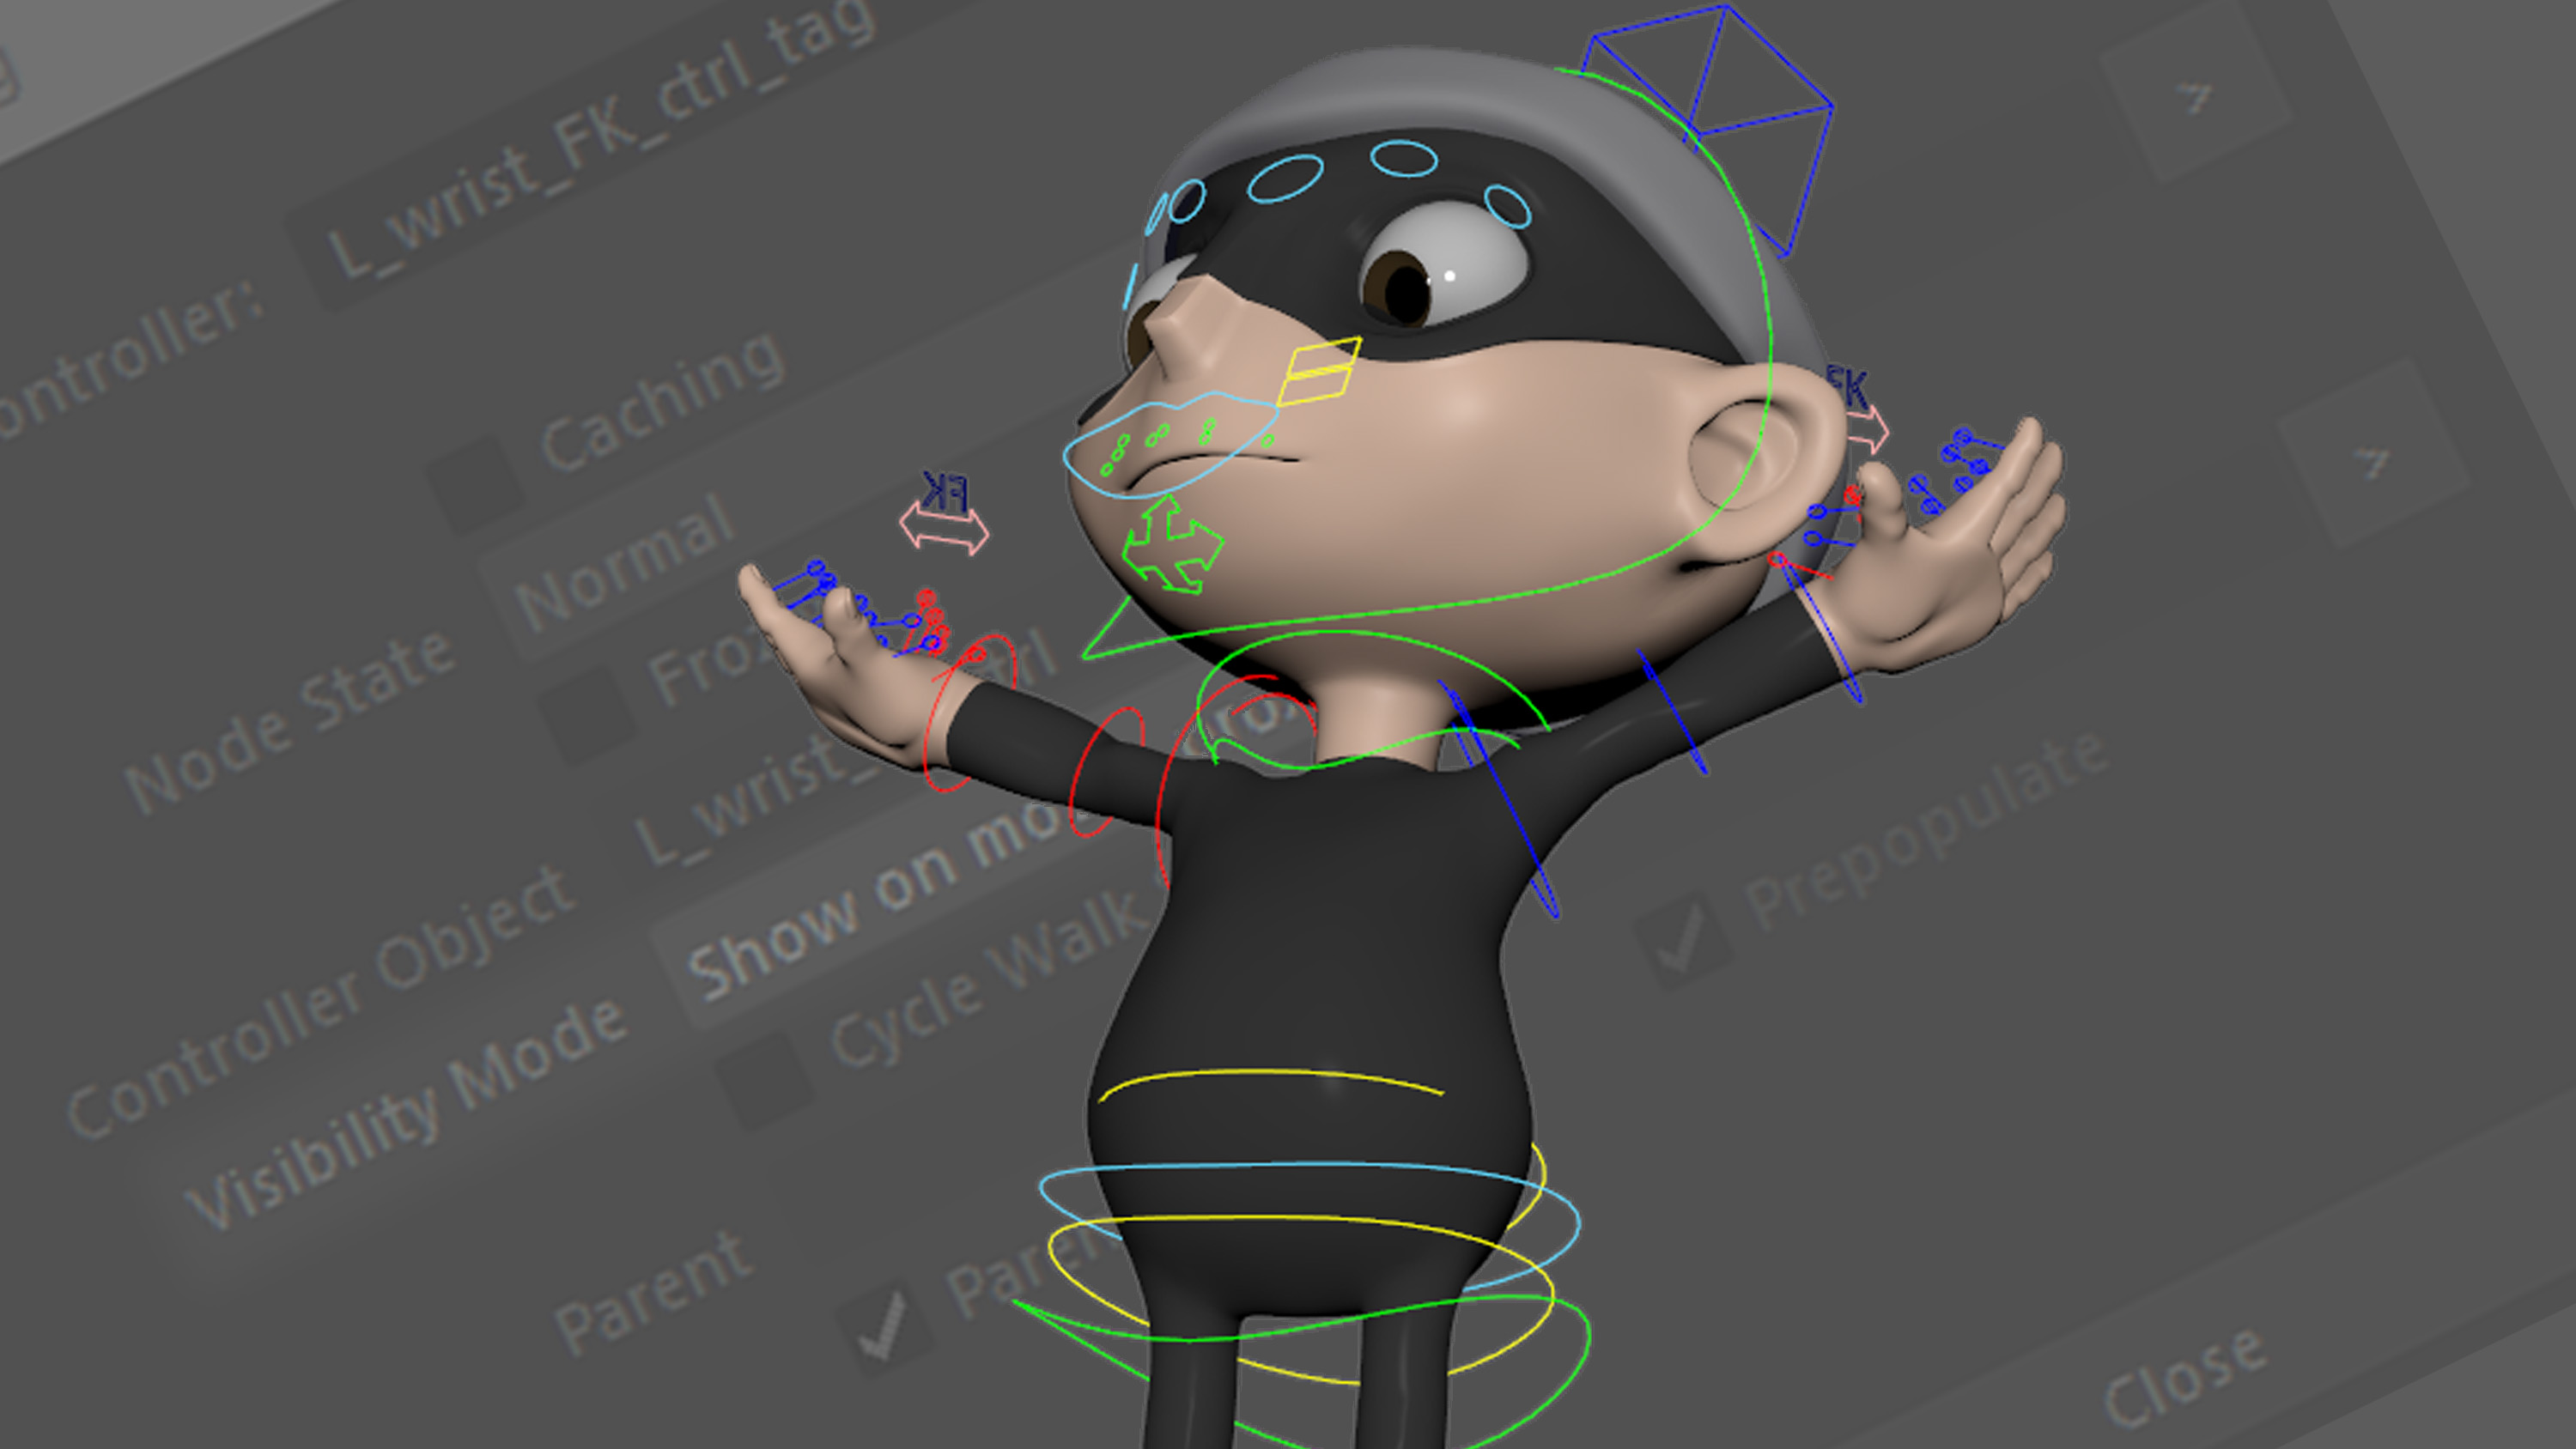 Create custom rig controls in Maya